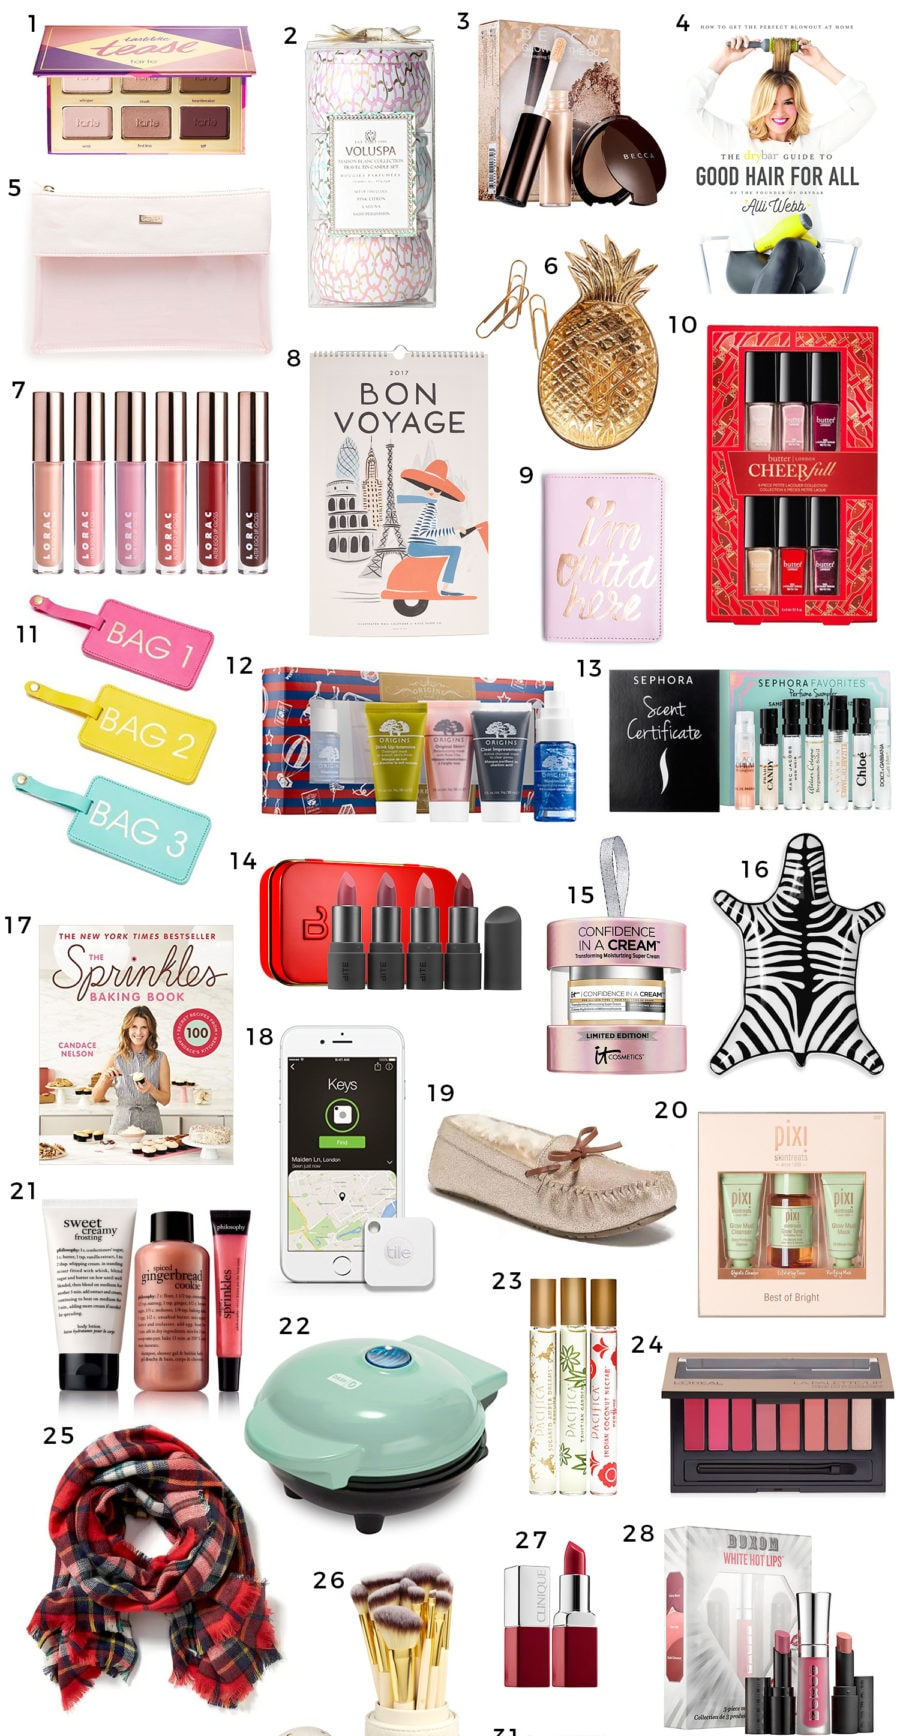 cly 10 best gifts under 25 inspiration of brilliant - Best Christmas Gifts For Her